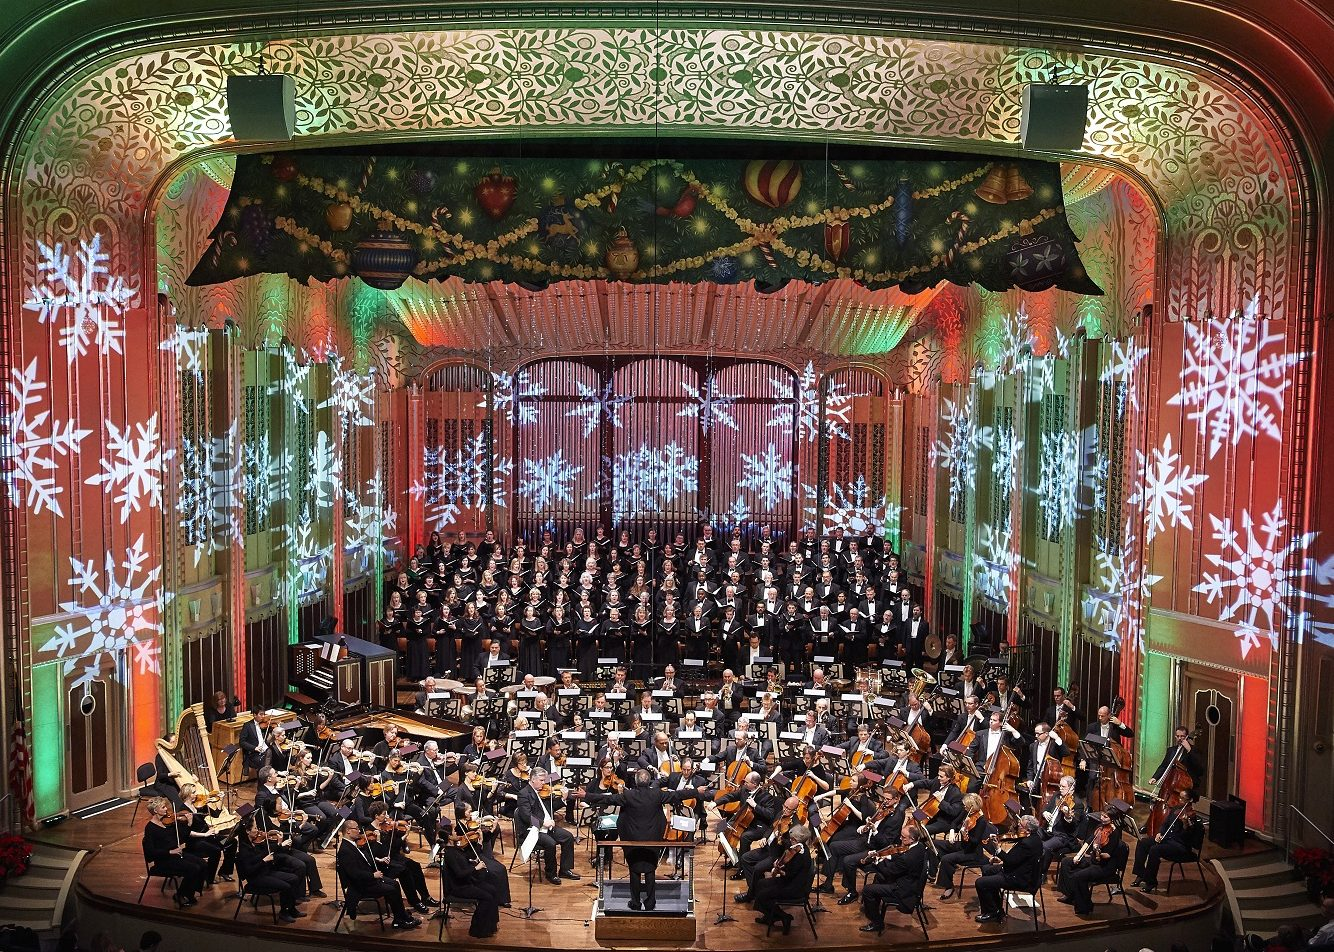 Cleveland Orchestra Christmas Concert 2021 Cleveland Orchestra Christmas Concerts The Cleveland Orchestra At Severance Hall Cleveland Oh Music